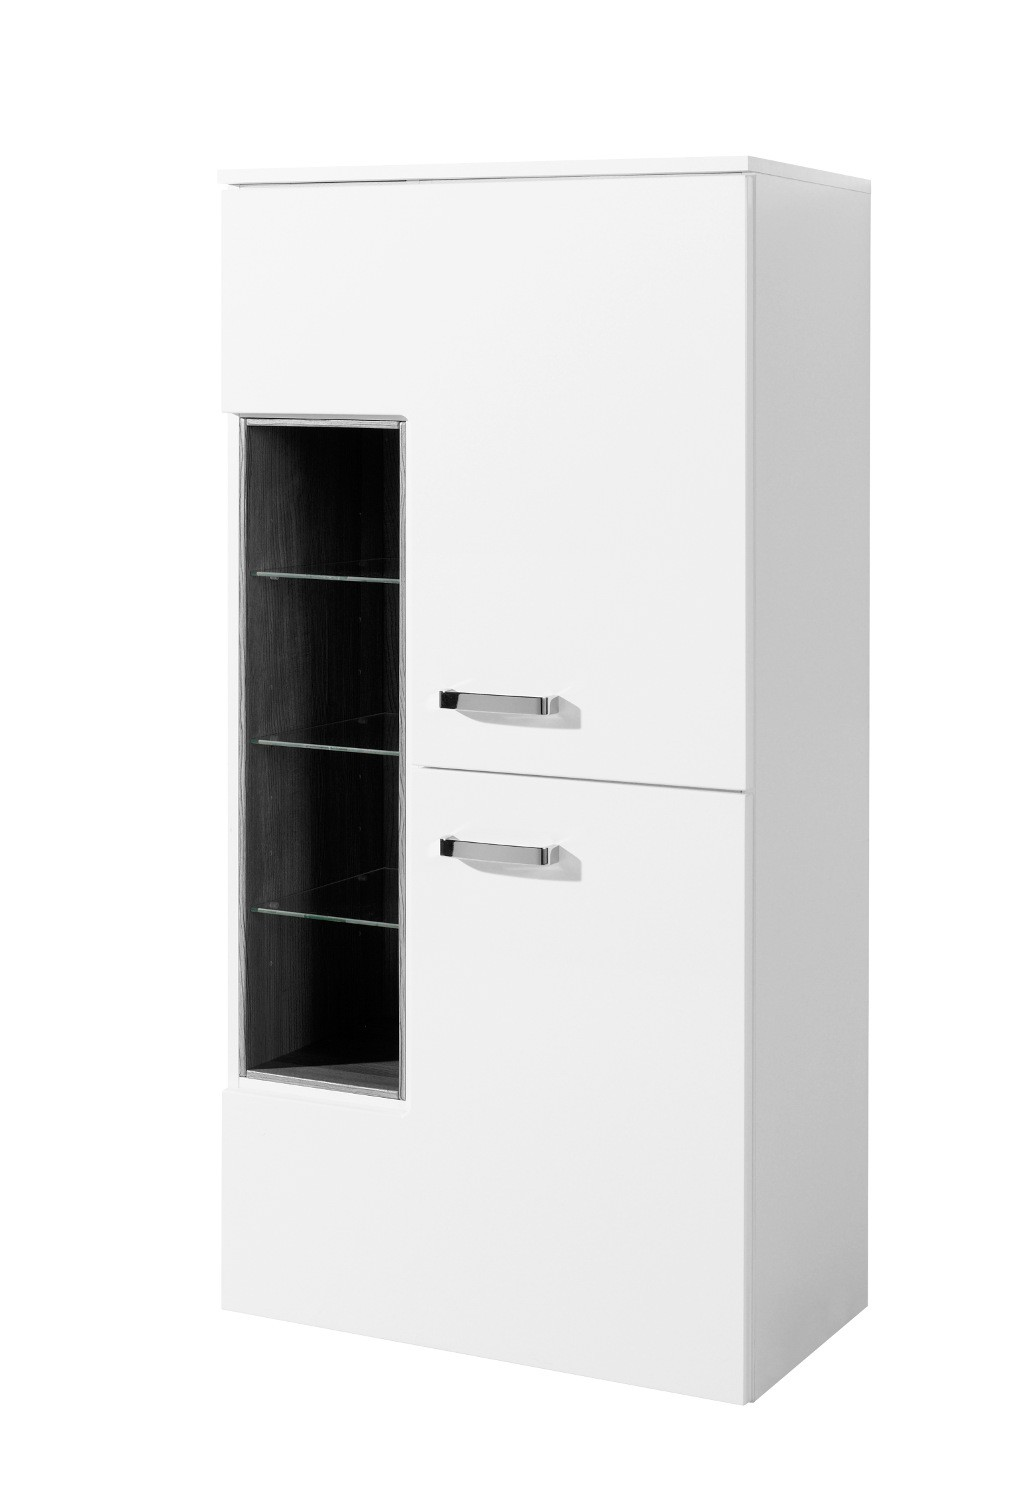 neu badezimmer midischrank ancona midi highboard badezimmerschrank 65 cm weiss ebay. Black Bedroom Furniture Sets. Home Design Ideas